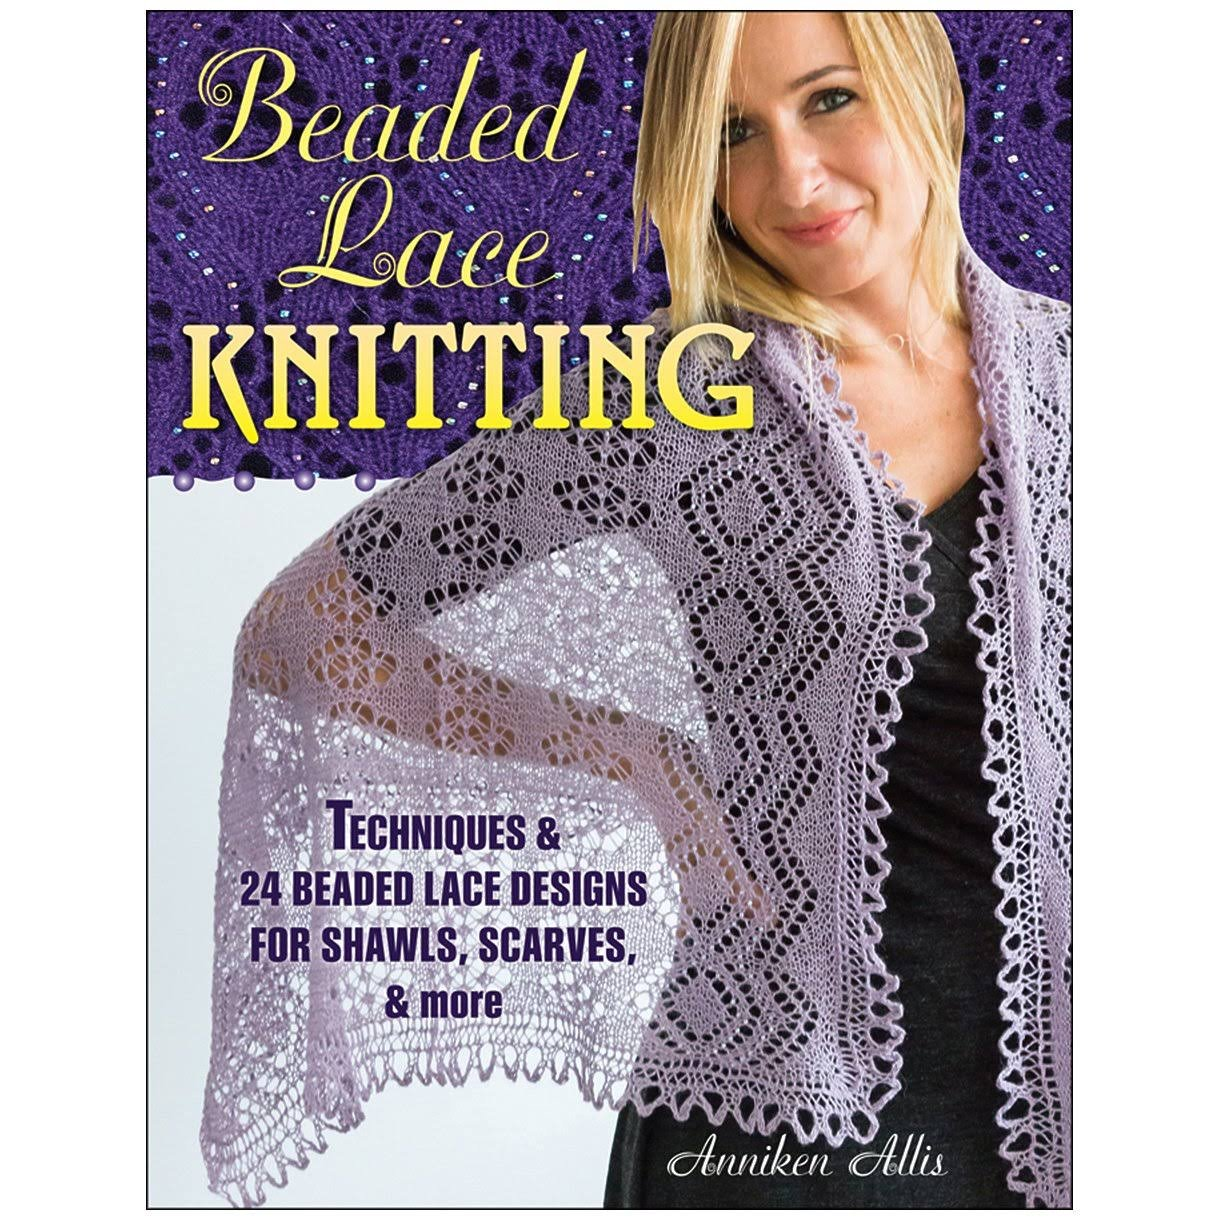 Beaded Lace Knitting: Techniques and 24 Beaded Lace Designs for Shawls, Scarves and More